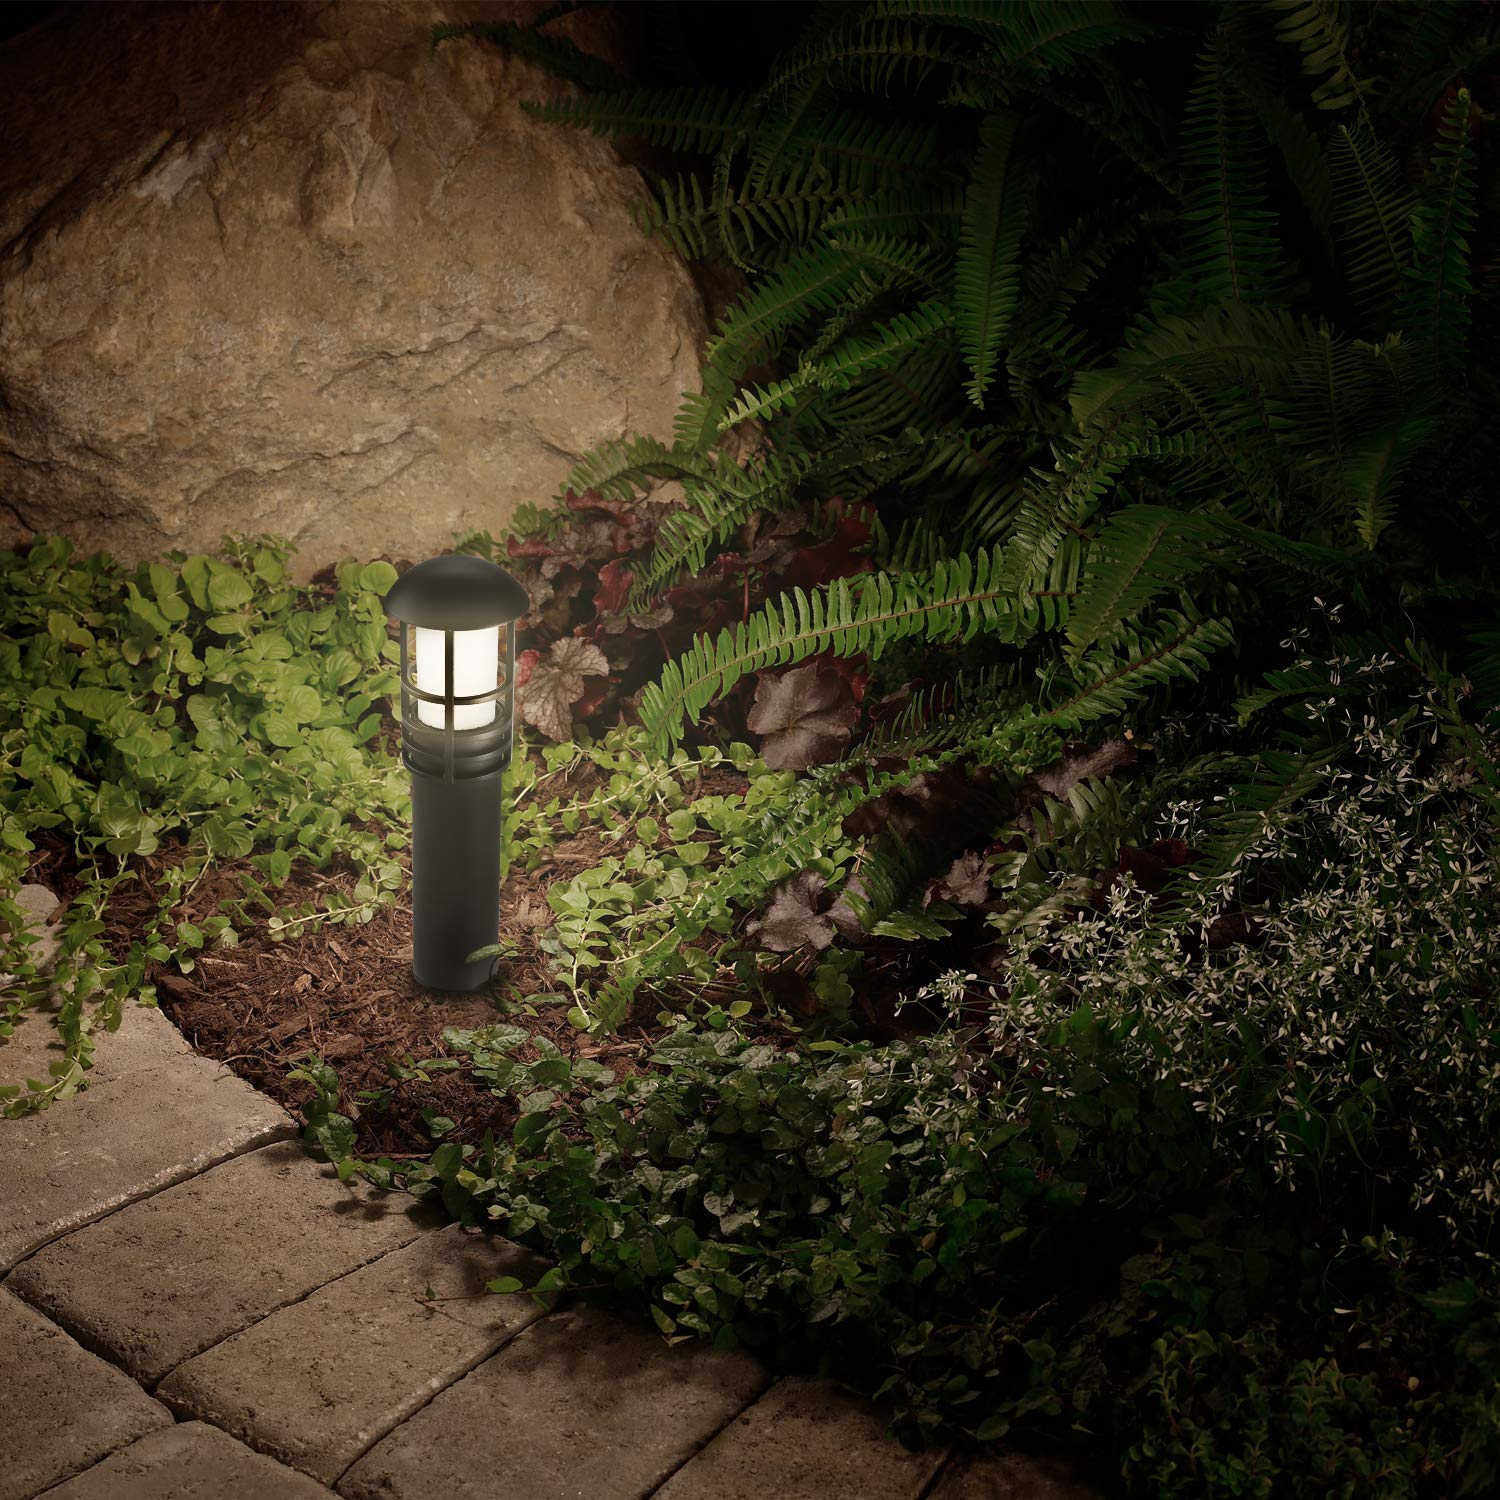 LEONLITE 3W LED Landscape Light, 18W Eqv, 12V Low Voltage, Waterproof, Aluminum Housing with Ground Stake, ETL Listed Outdoor Pathway Garden Yard Patio Lamp, 4000K Cool White, Pack of 12 by LEONLITE (Image #6)